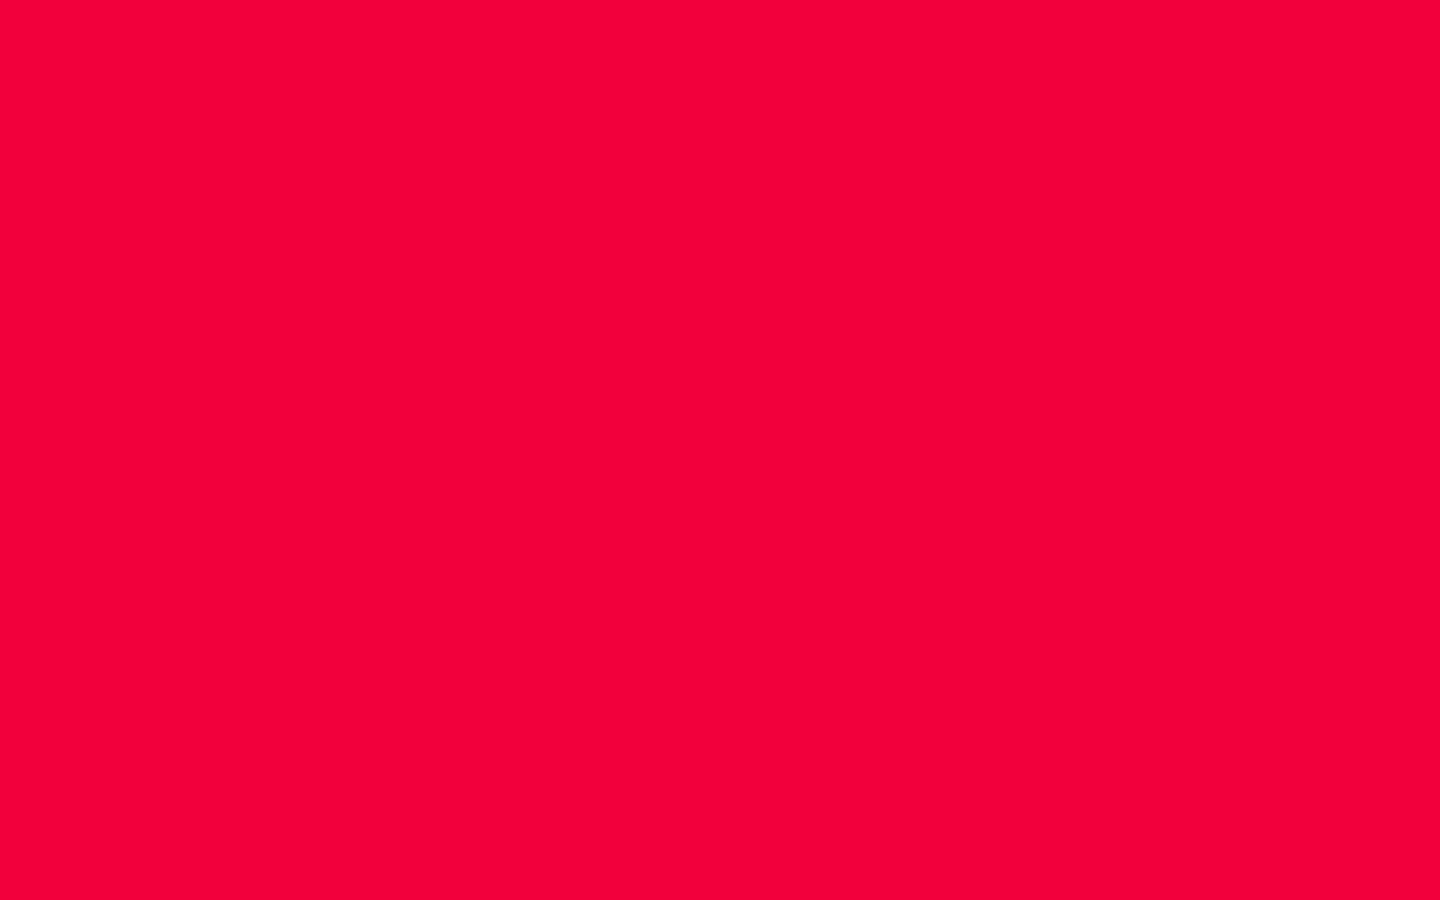 1440x900 Red Munsell Solid Color Background